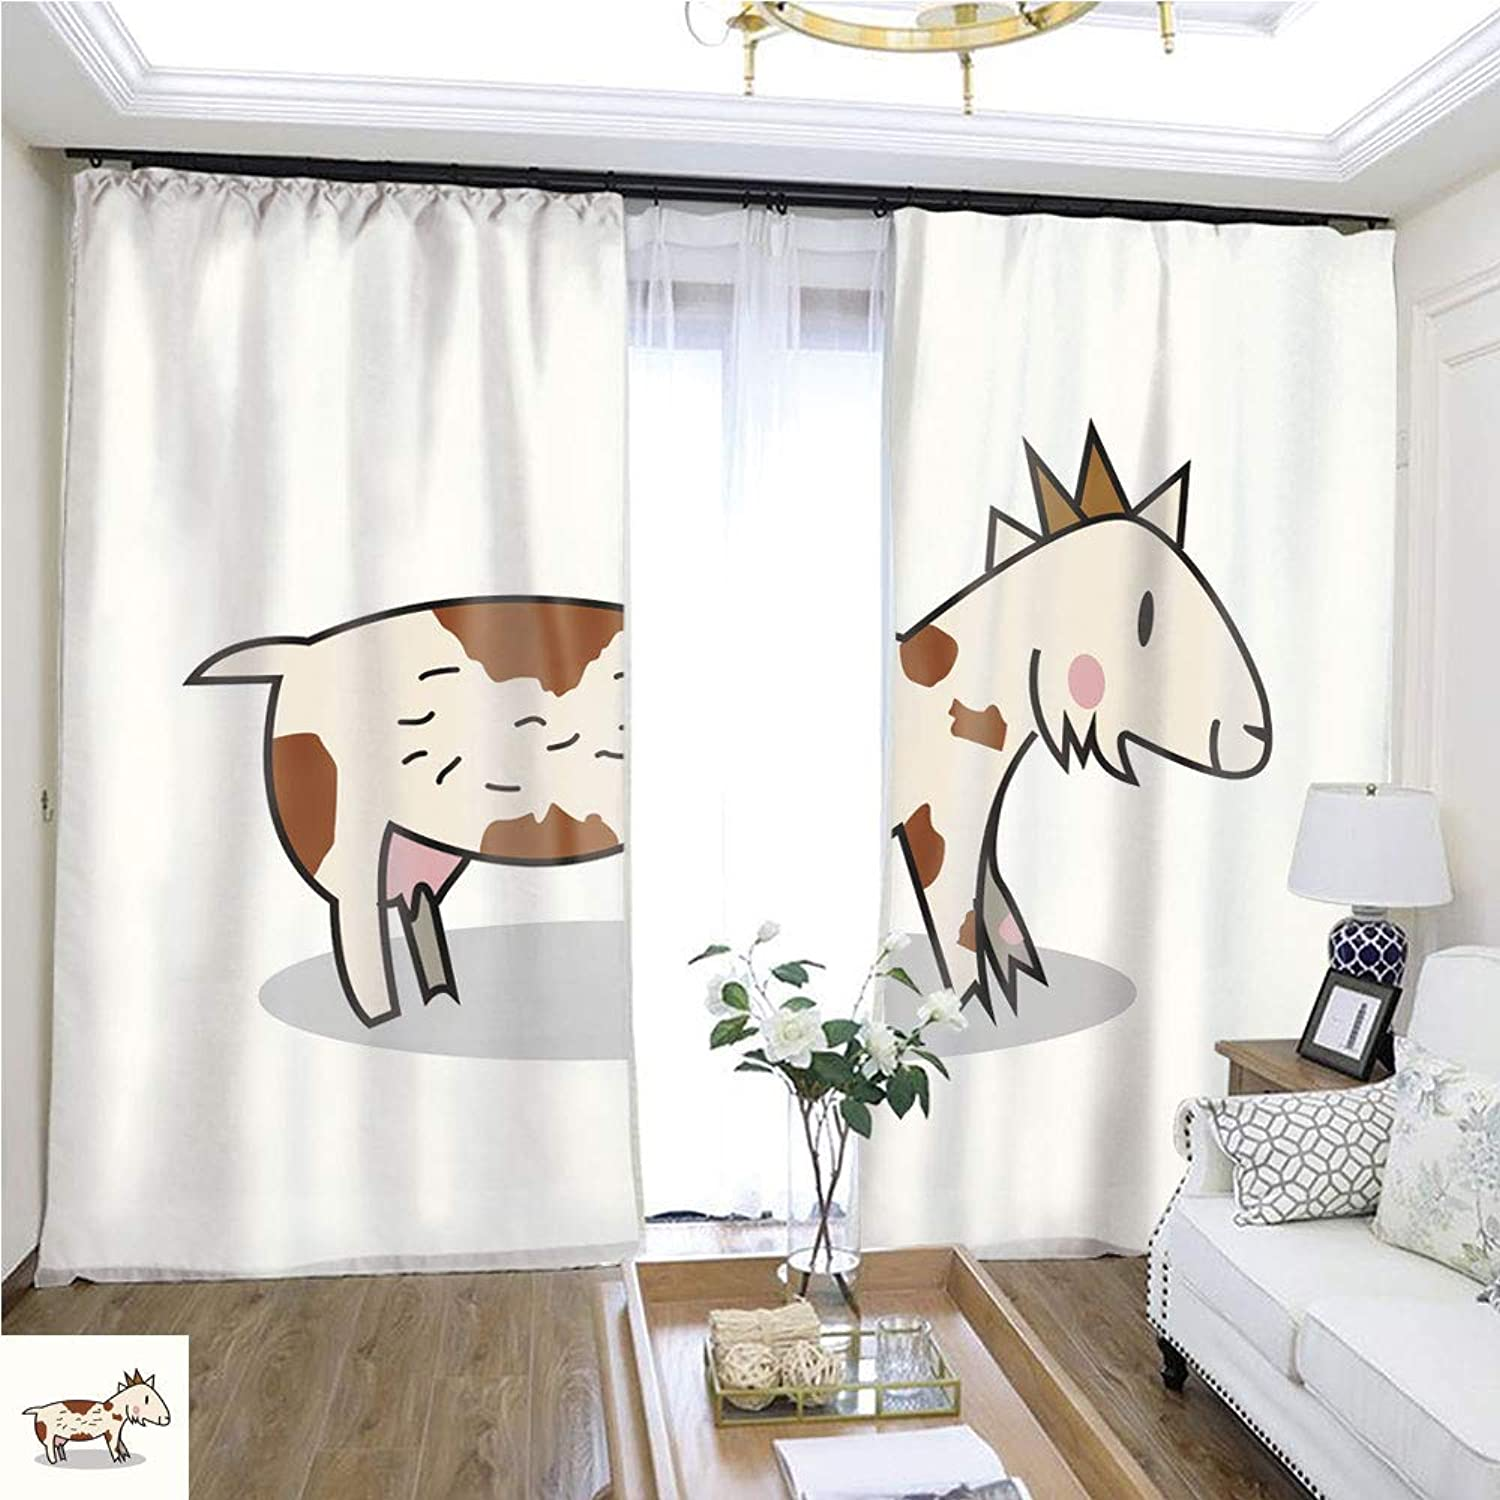 Air Port Screen Cute goat1 W108 x L86 Provide Heat Highprecision Curtains for bedrooms Living Rooms Kitchens etc.